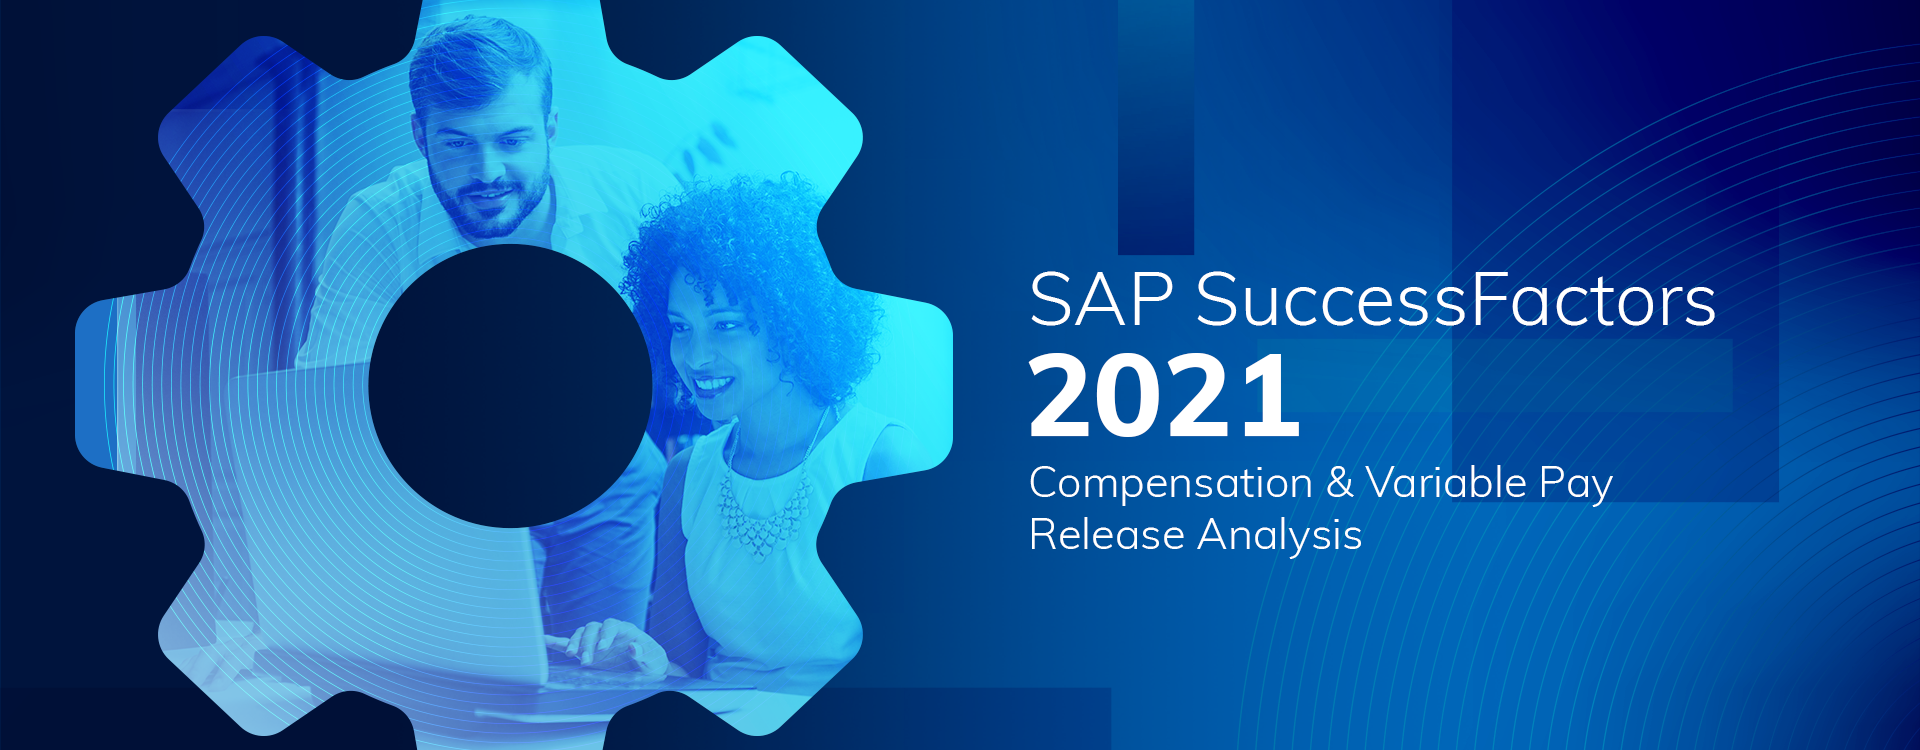 SAP SuccessFactors H1 2021 Compensation & Variable Pay Release Analysis featured image